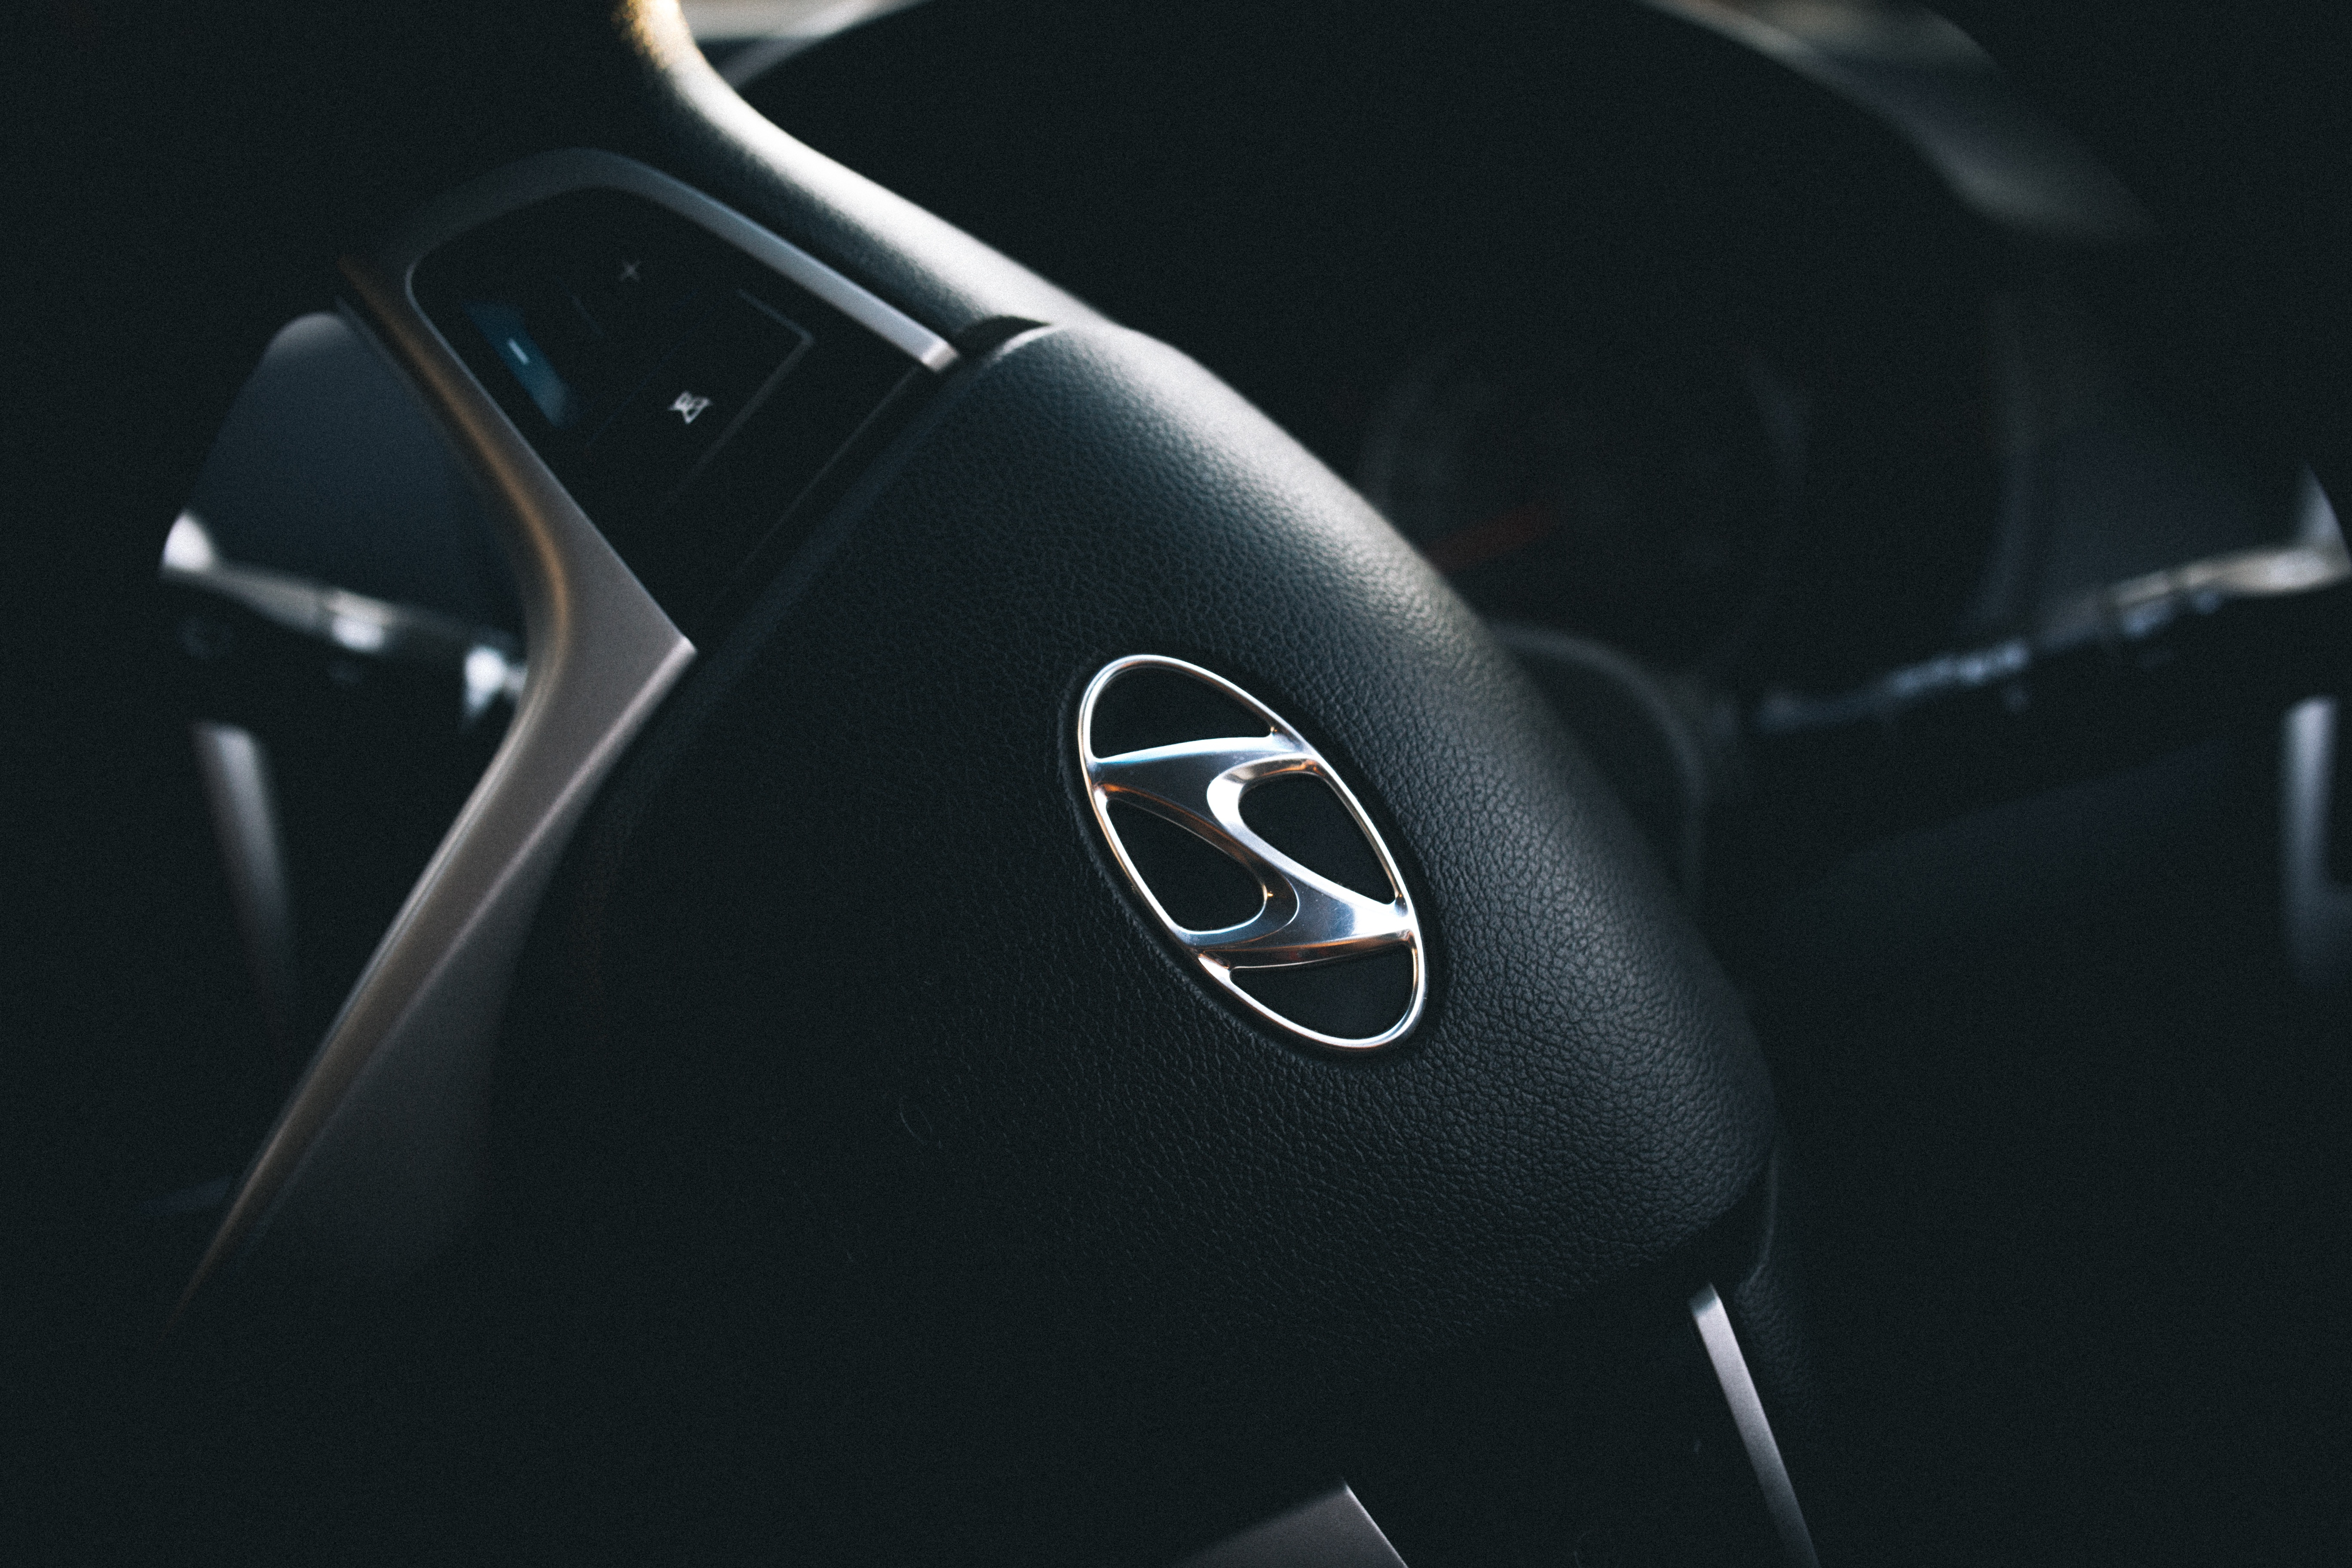 62587 download wallpaper Hyundai, Cars, Steering Wheel, Rudder, Logo, Logotype screensavers and pictures for free